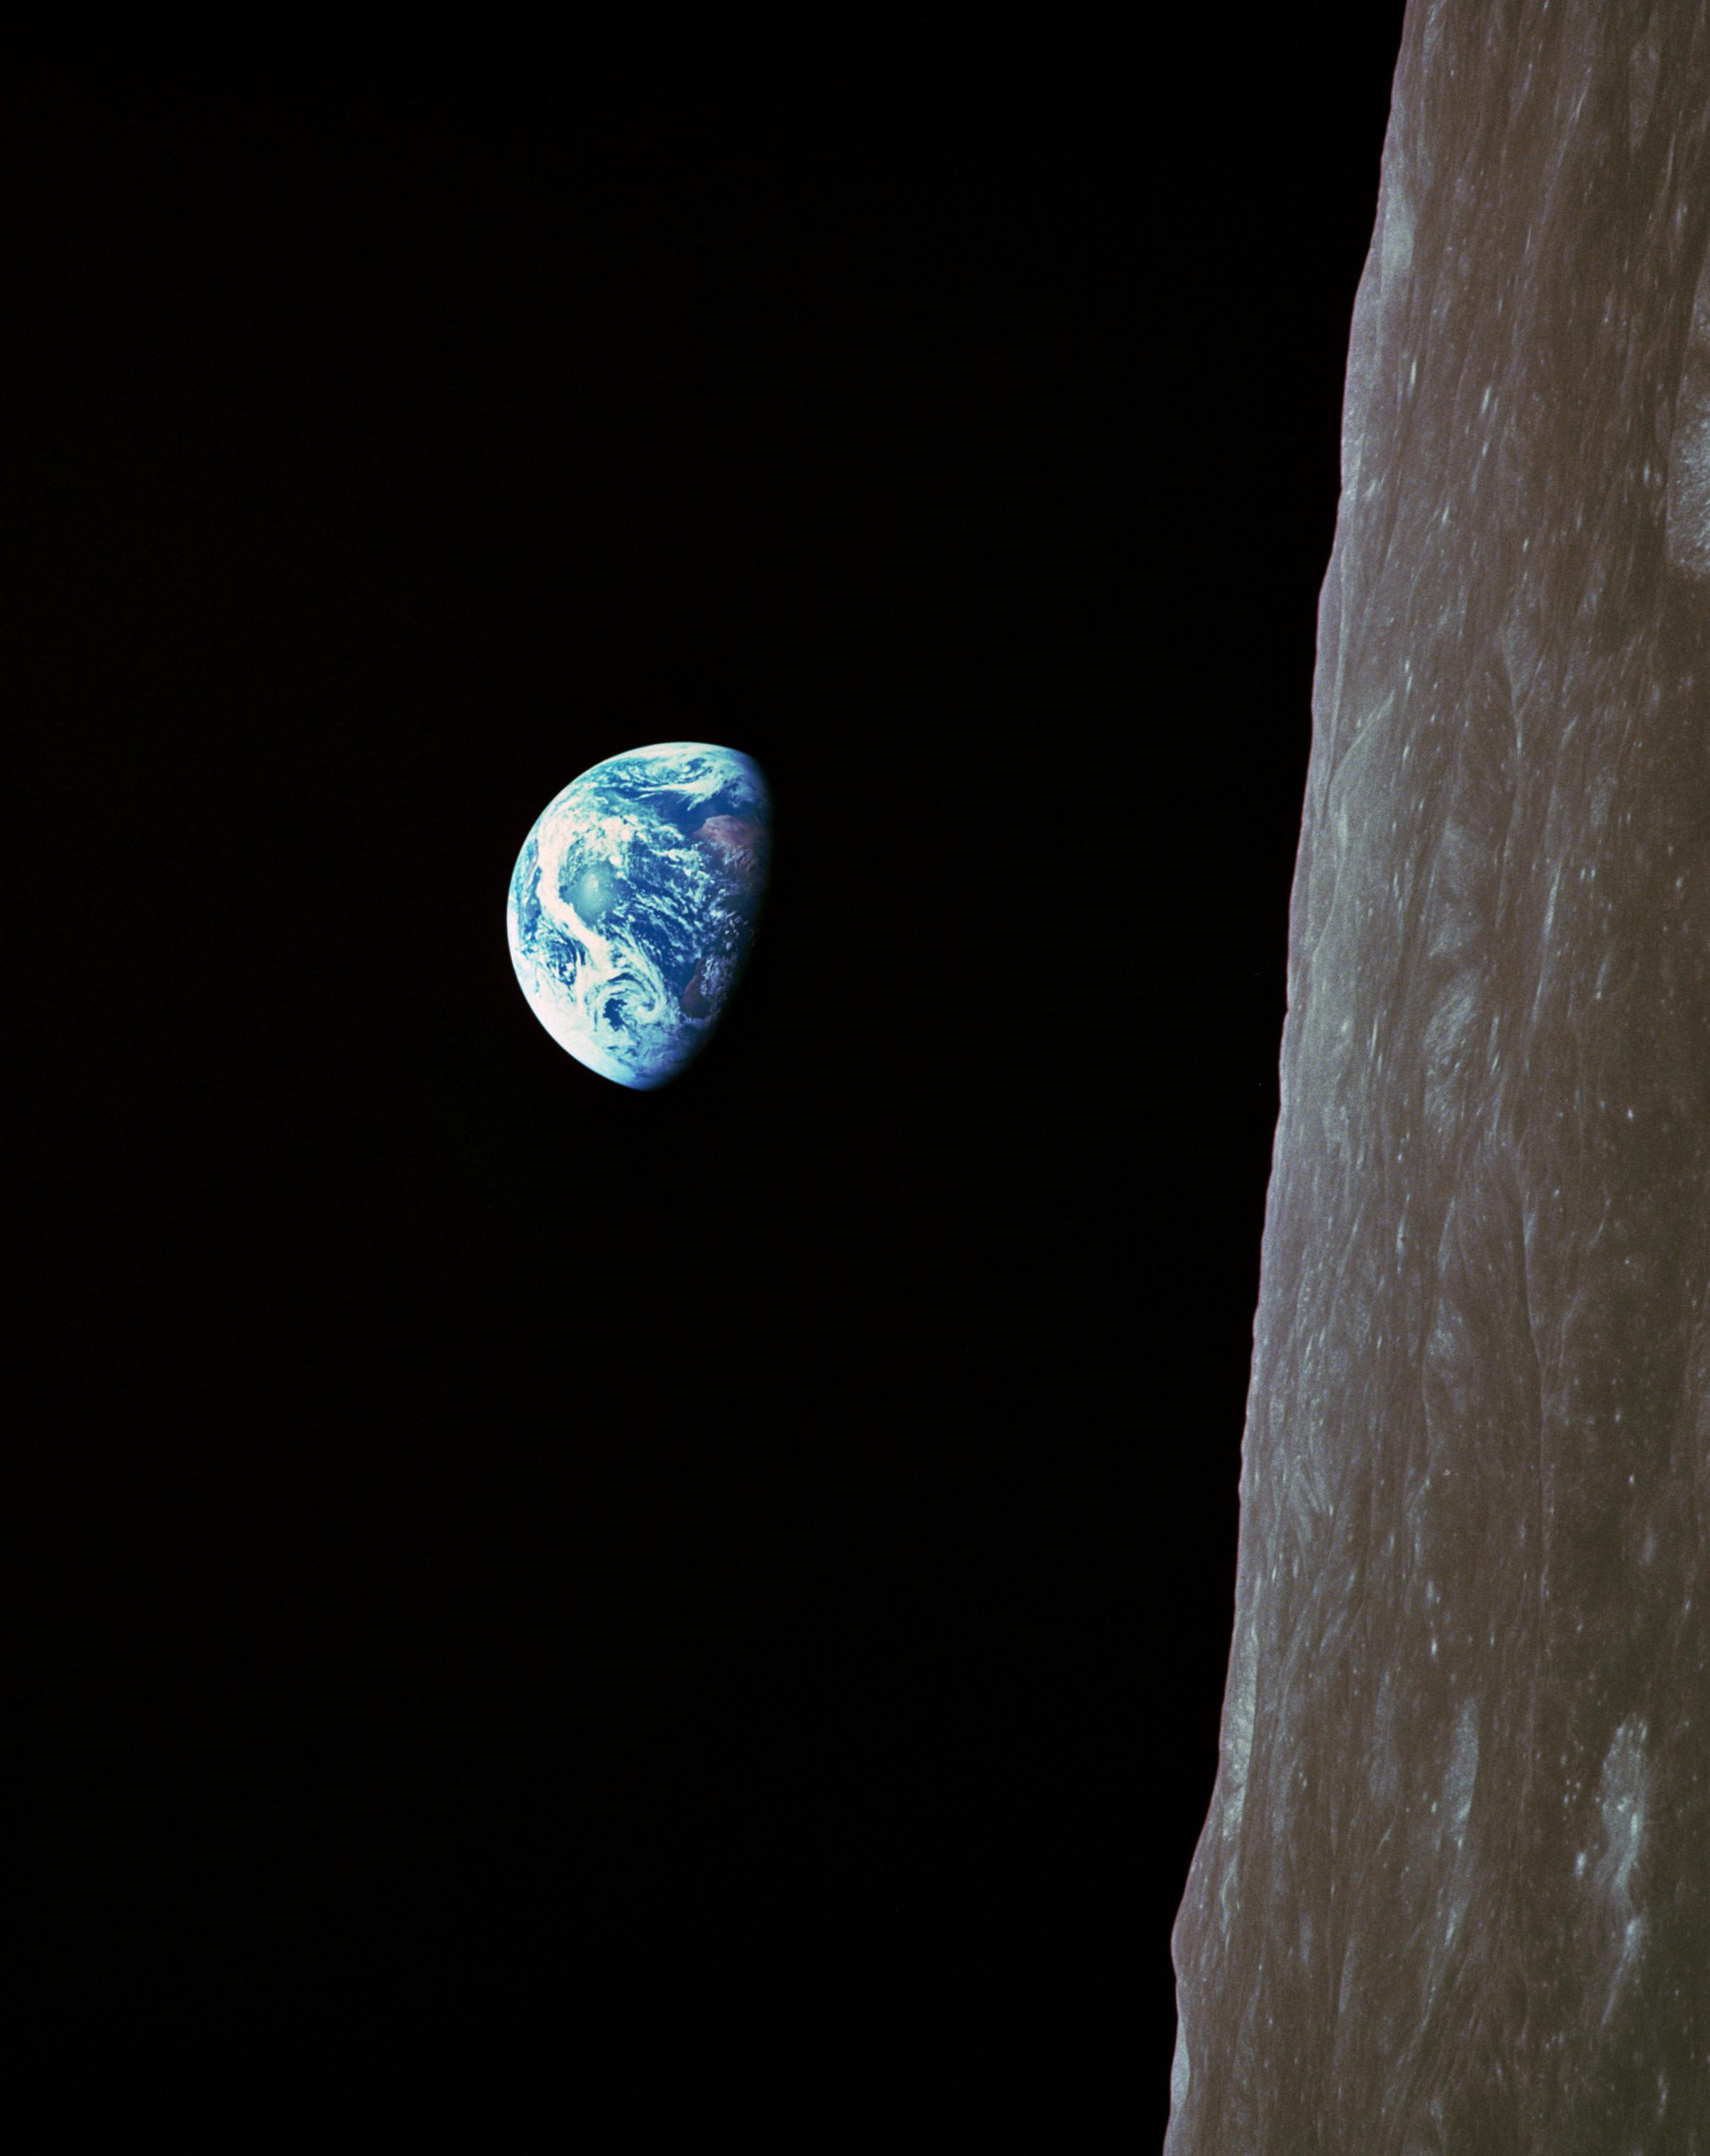 Earthrise EL-2001-00365h NASA Apollo 8 1968.jpg